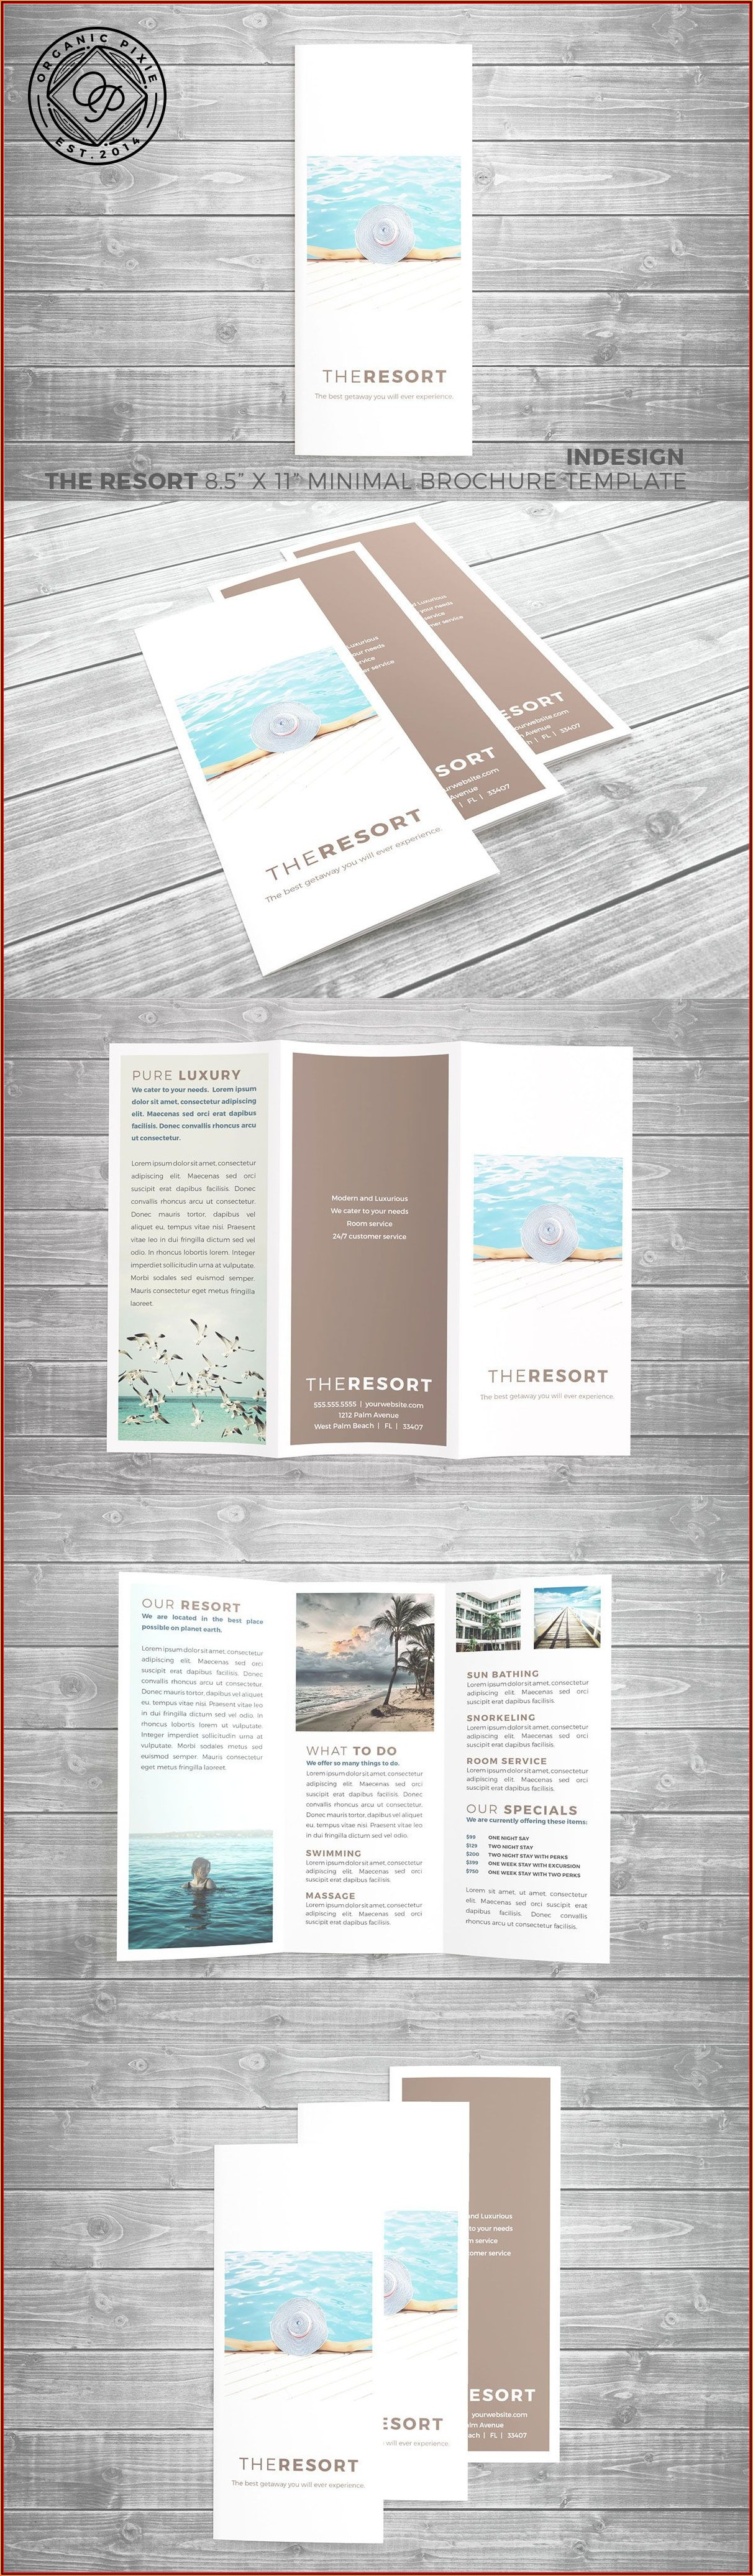 8.5 X 11 Tri Fold Brochure Template Indesign